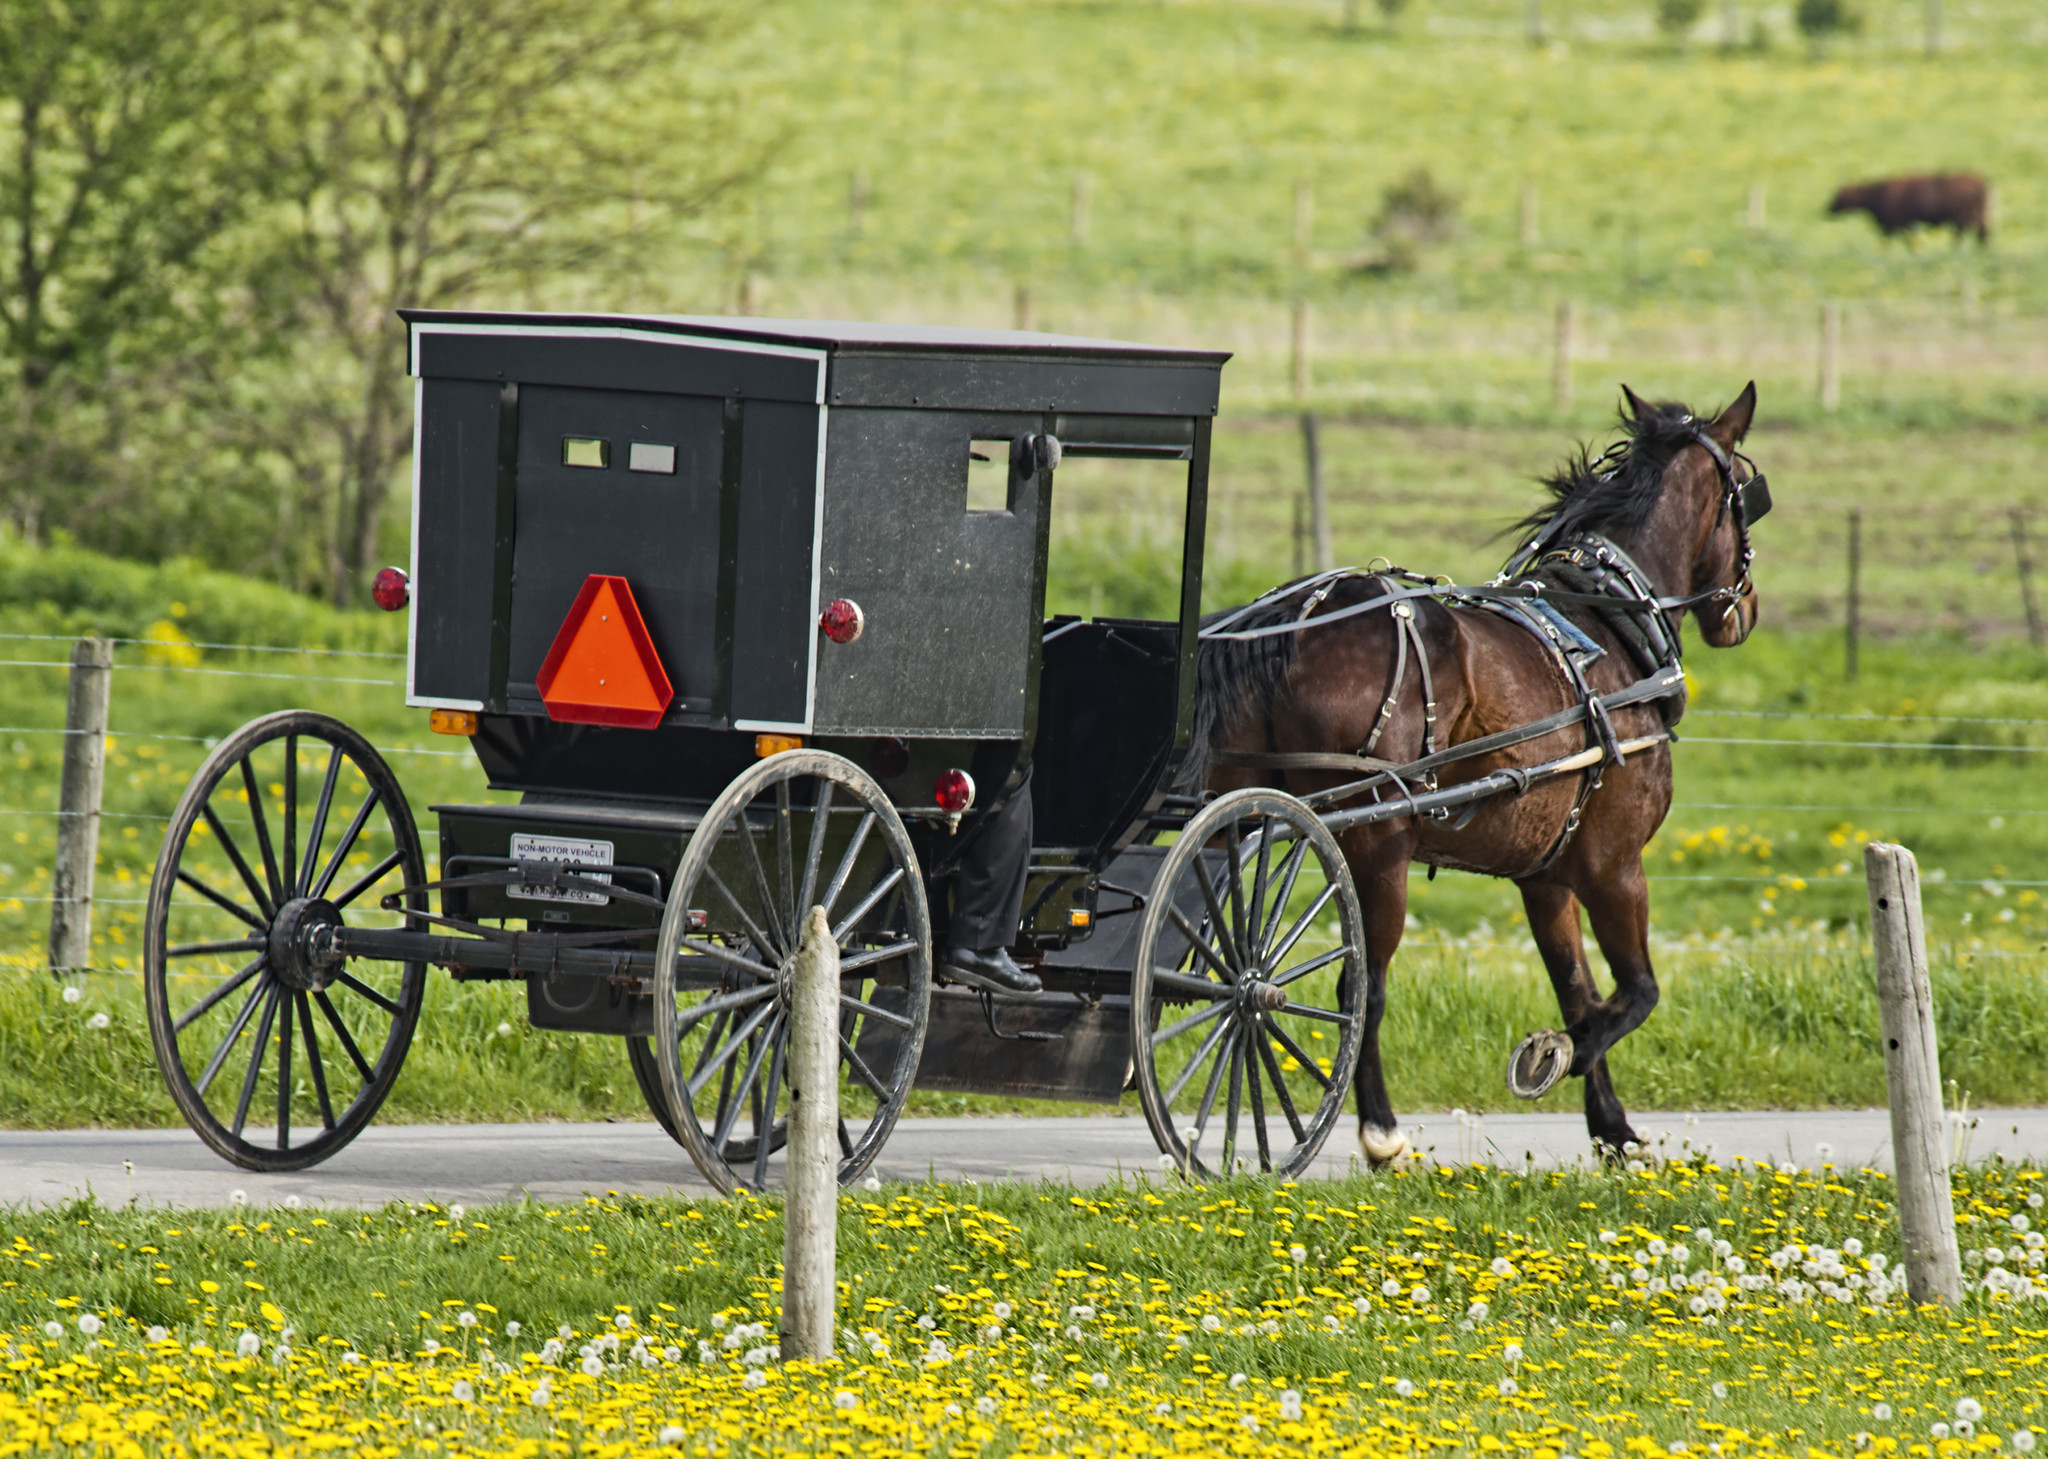 Four Michigan men charged in drunken horse and buggy ride